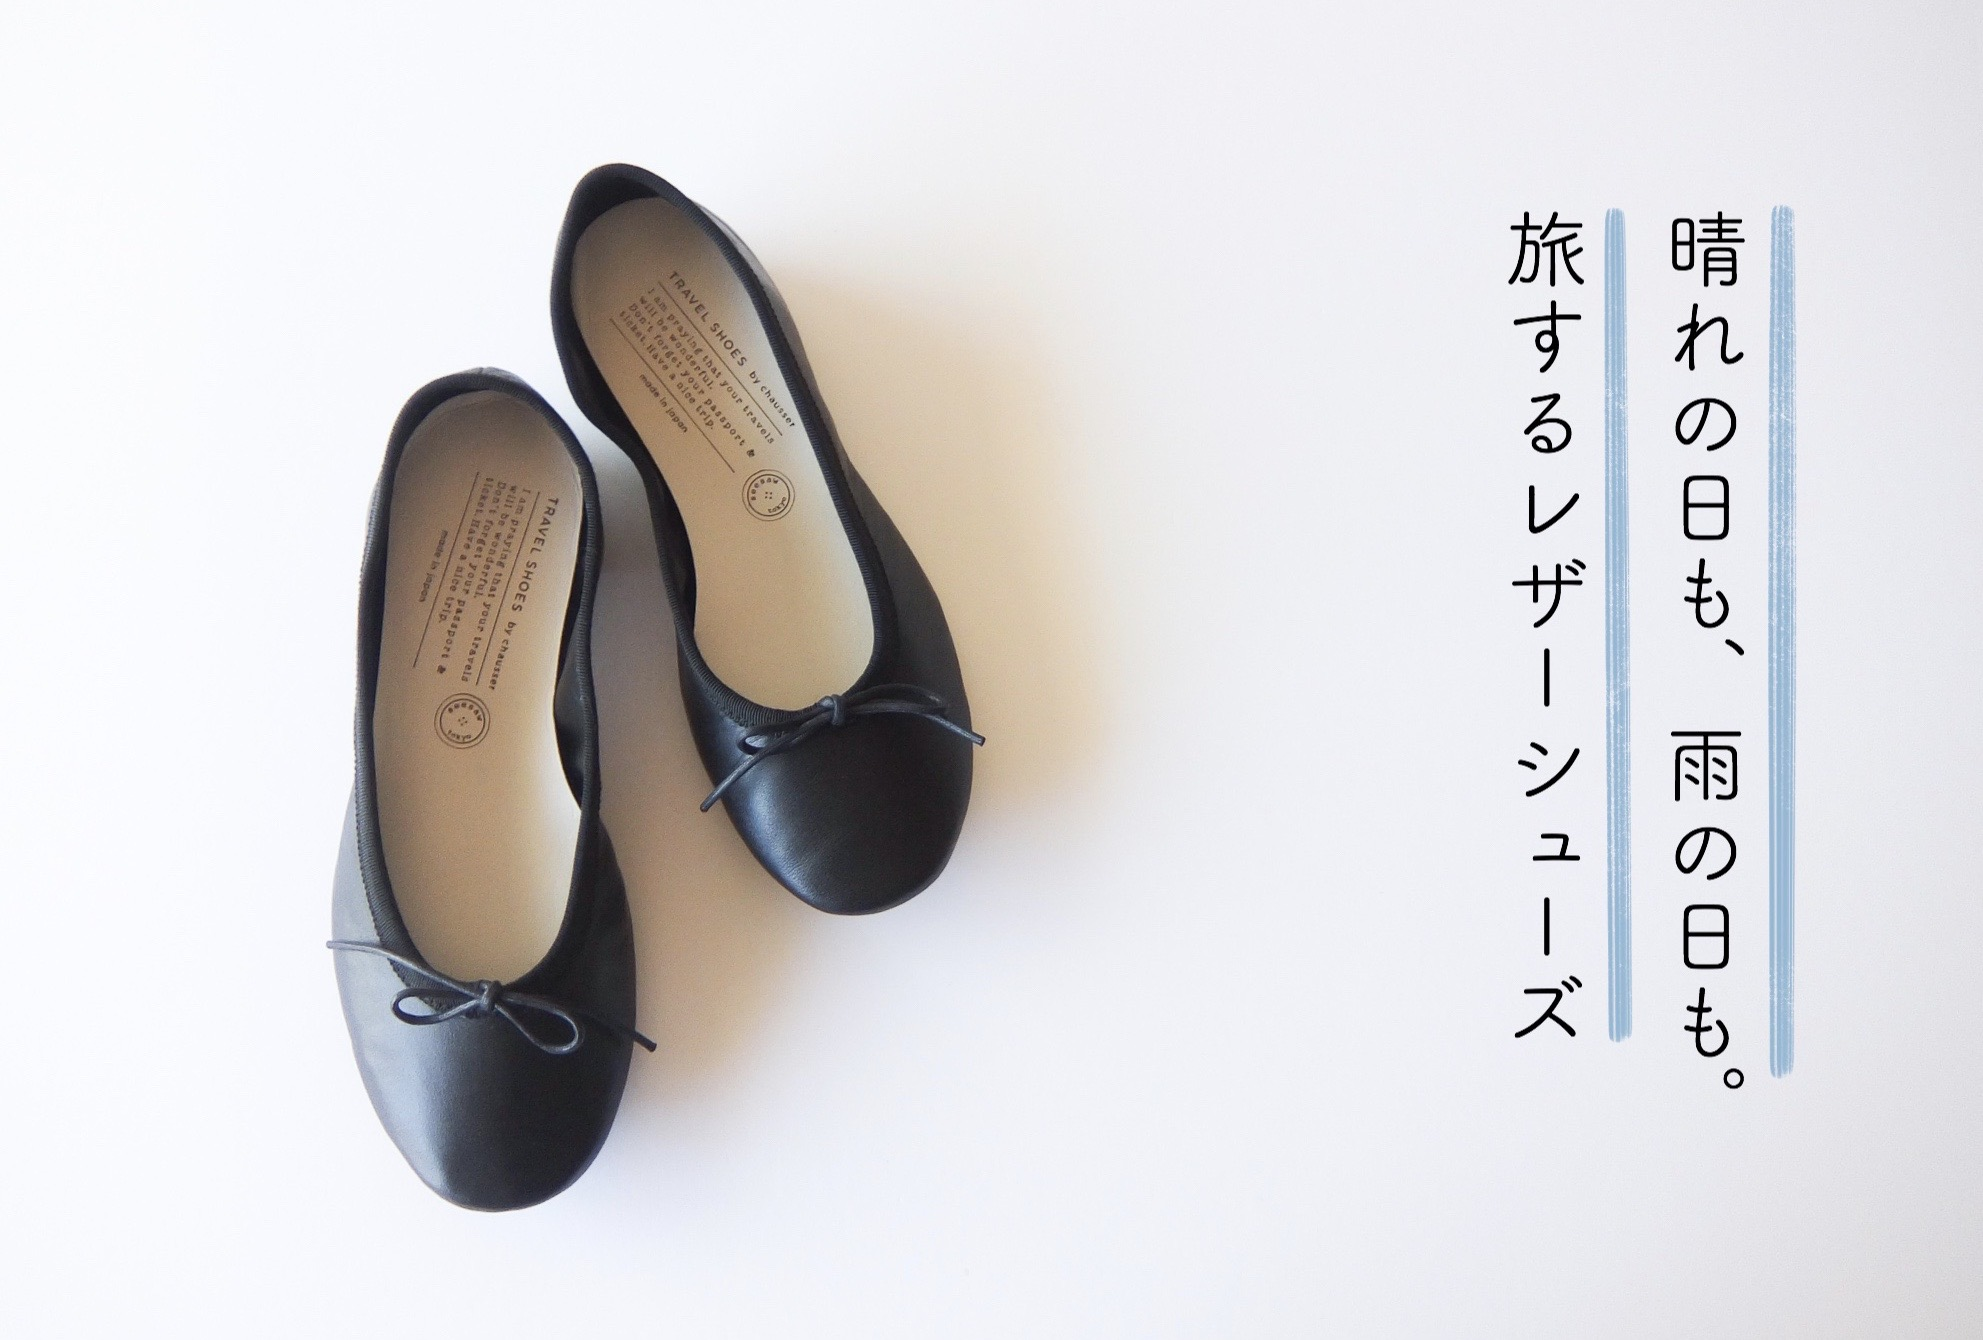 TRAVEL SHOES by chausser の旅するレザーシューズ